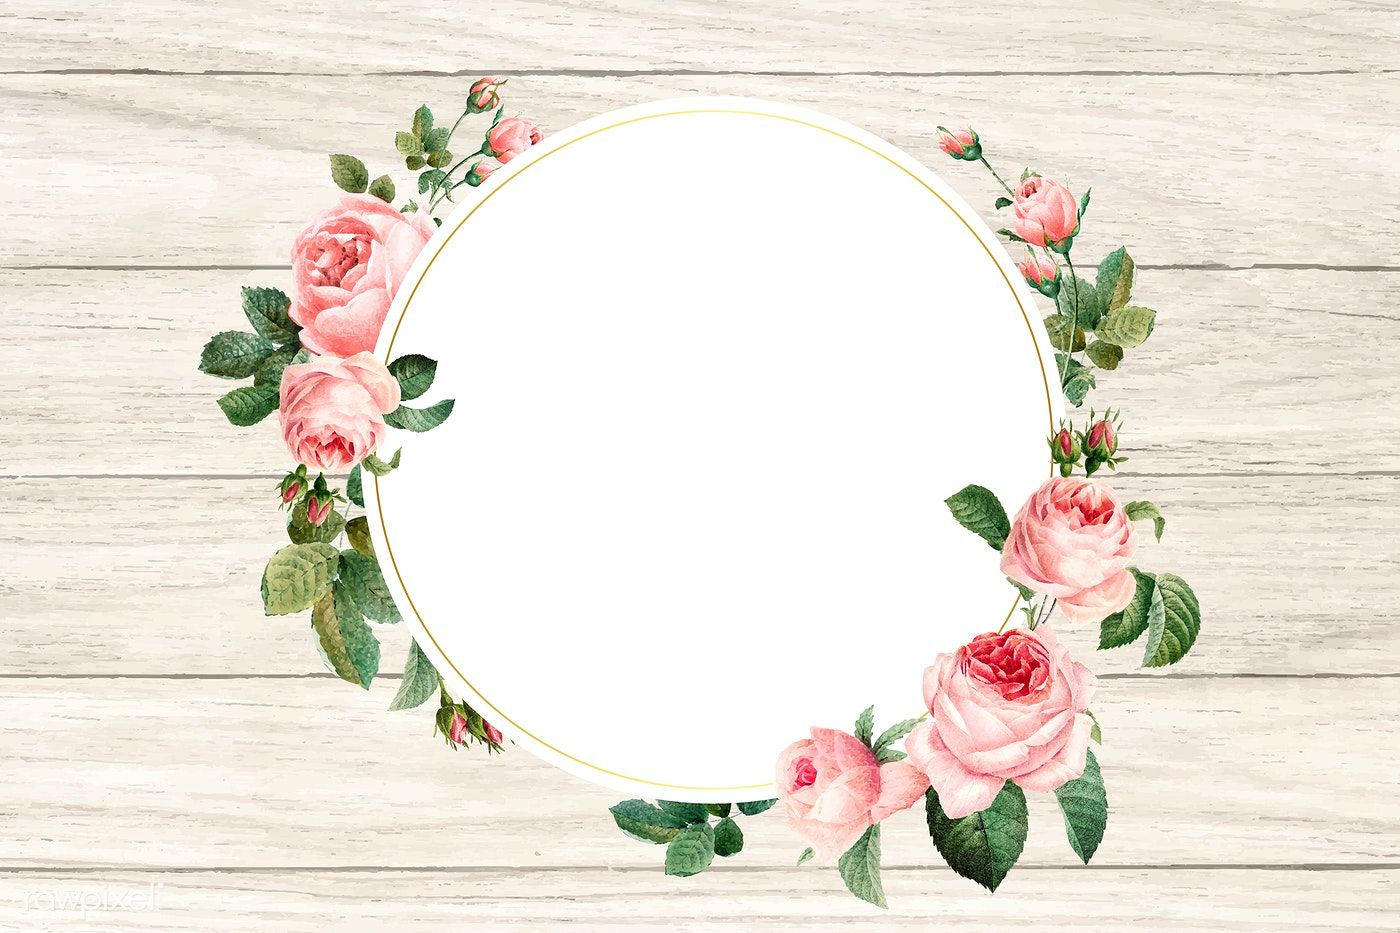 Download Premium Vector Of Floral Round Frame On A Wooden Background Flower Frame Flower Illustration Round Frame